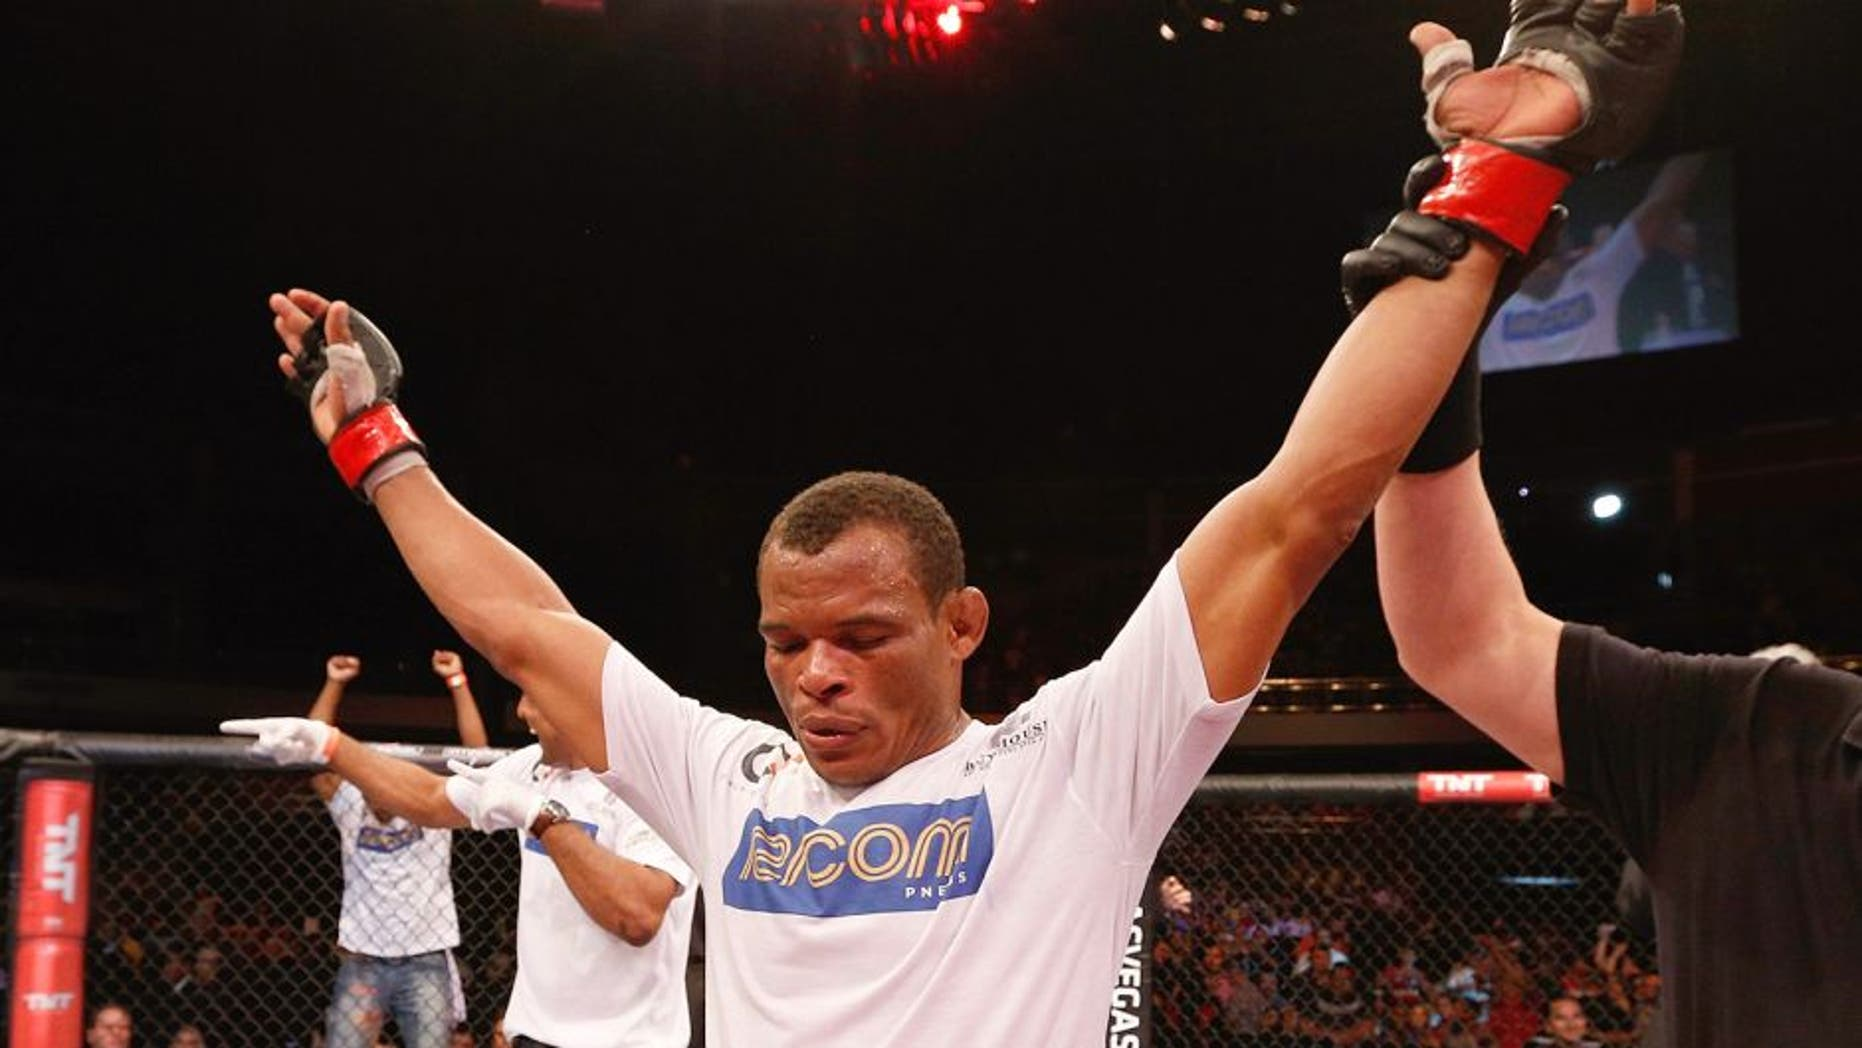 BRASILIA, BRAZIL - SEPTEMBER 13: Francisco Trinaldo celebrates after his unanimous-decision victory over Leandro Silva in their lightweight bout during the UFC Fight Night event inside Nilson Nelson Gymnasium on September 13, 2014 in Brasilia, Brazil. (Photo by Josh Hedges/Zuffa LLC/Zuffa LLC via Getty Images)